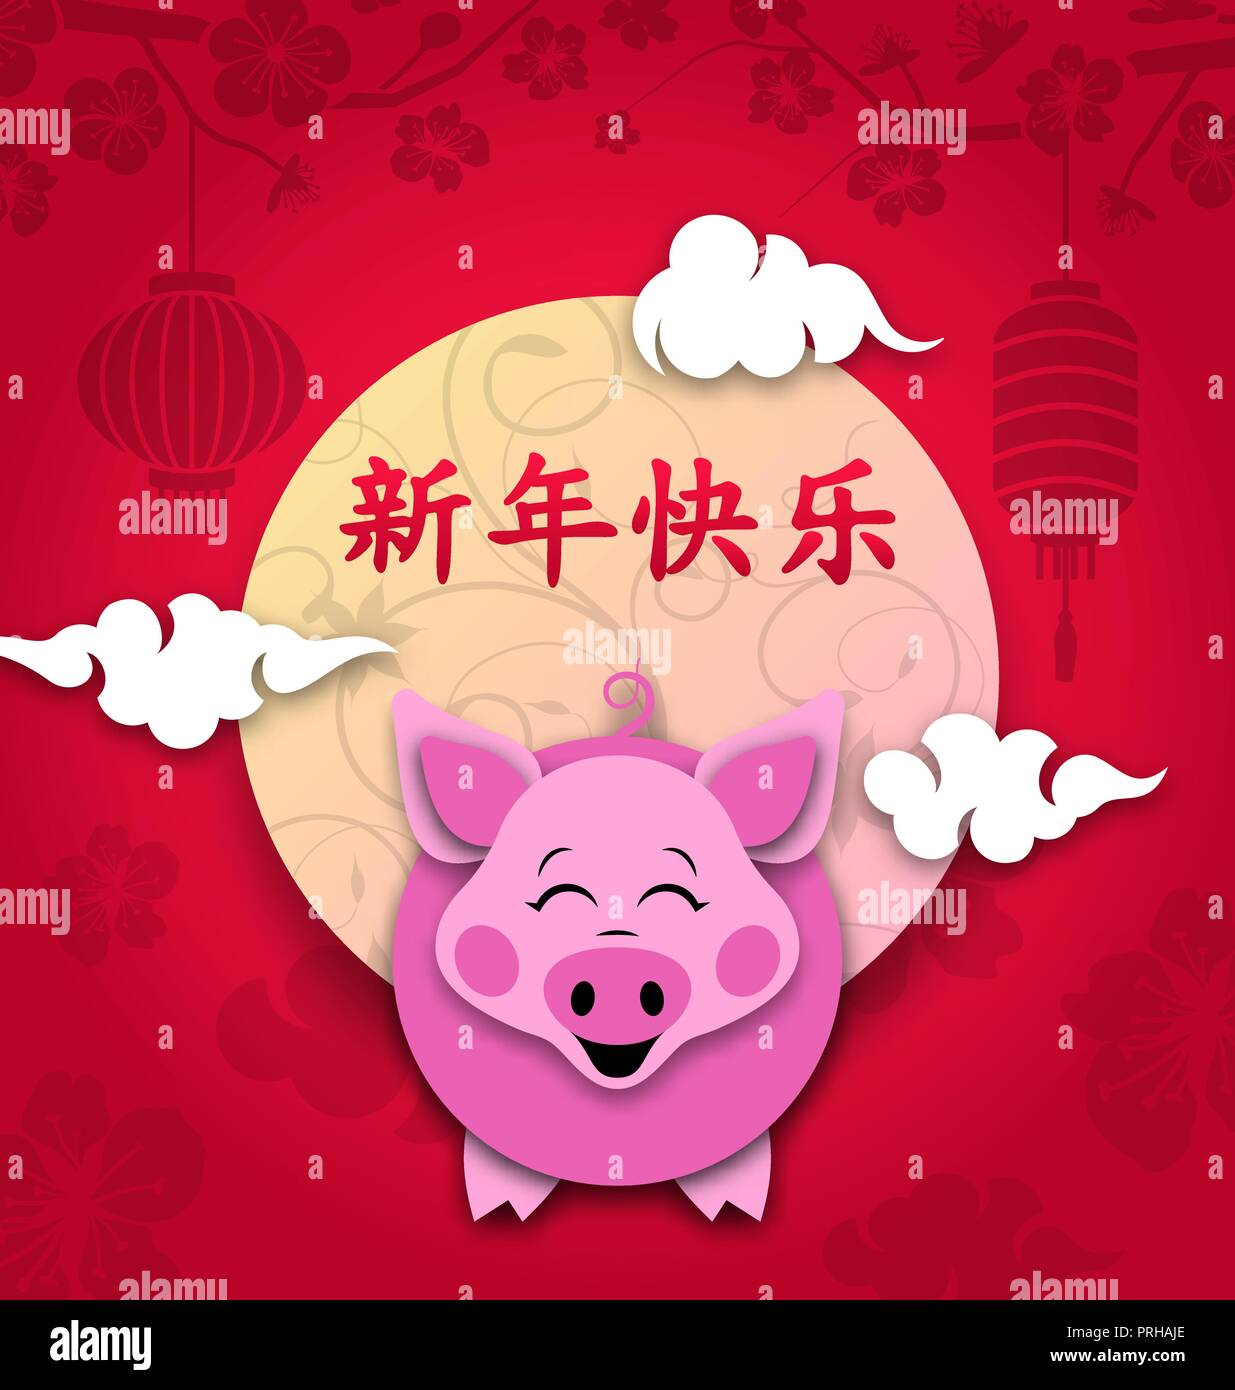 happy chinese new year card with cartoon funny pig translation chinese characters happy new year